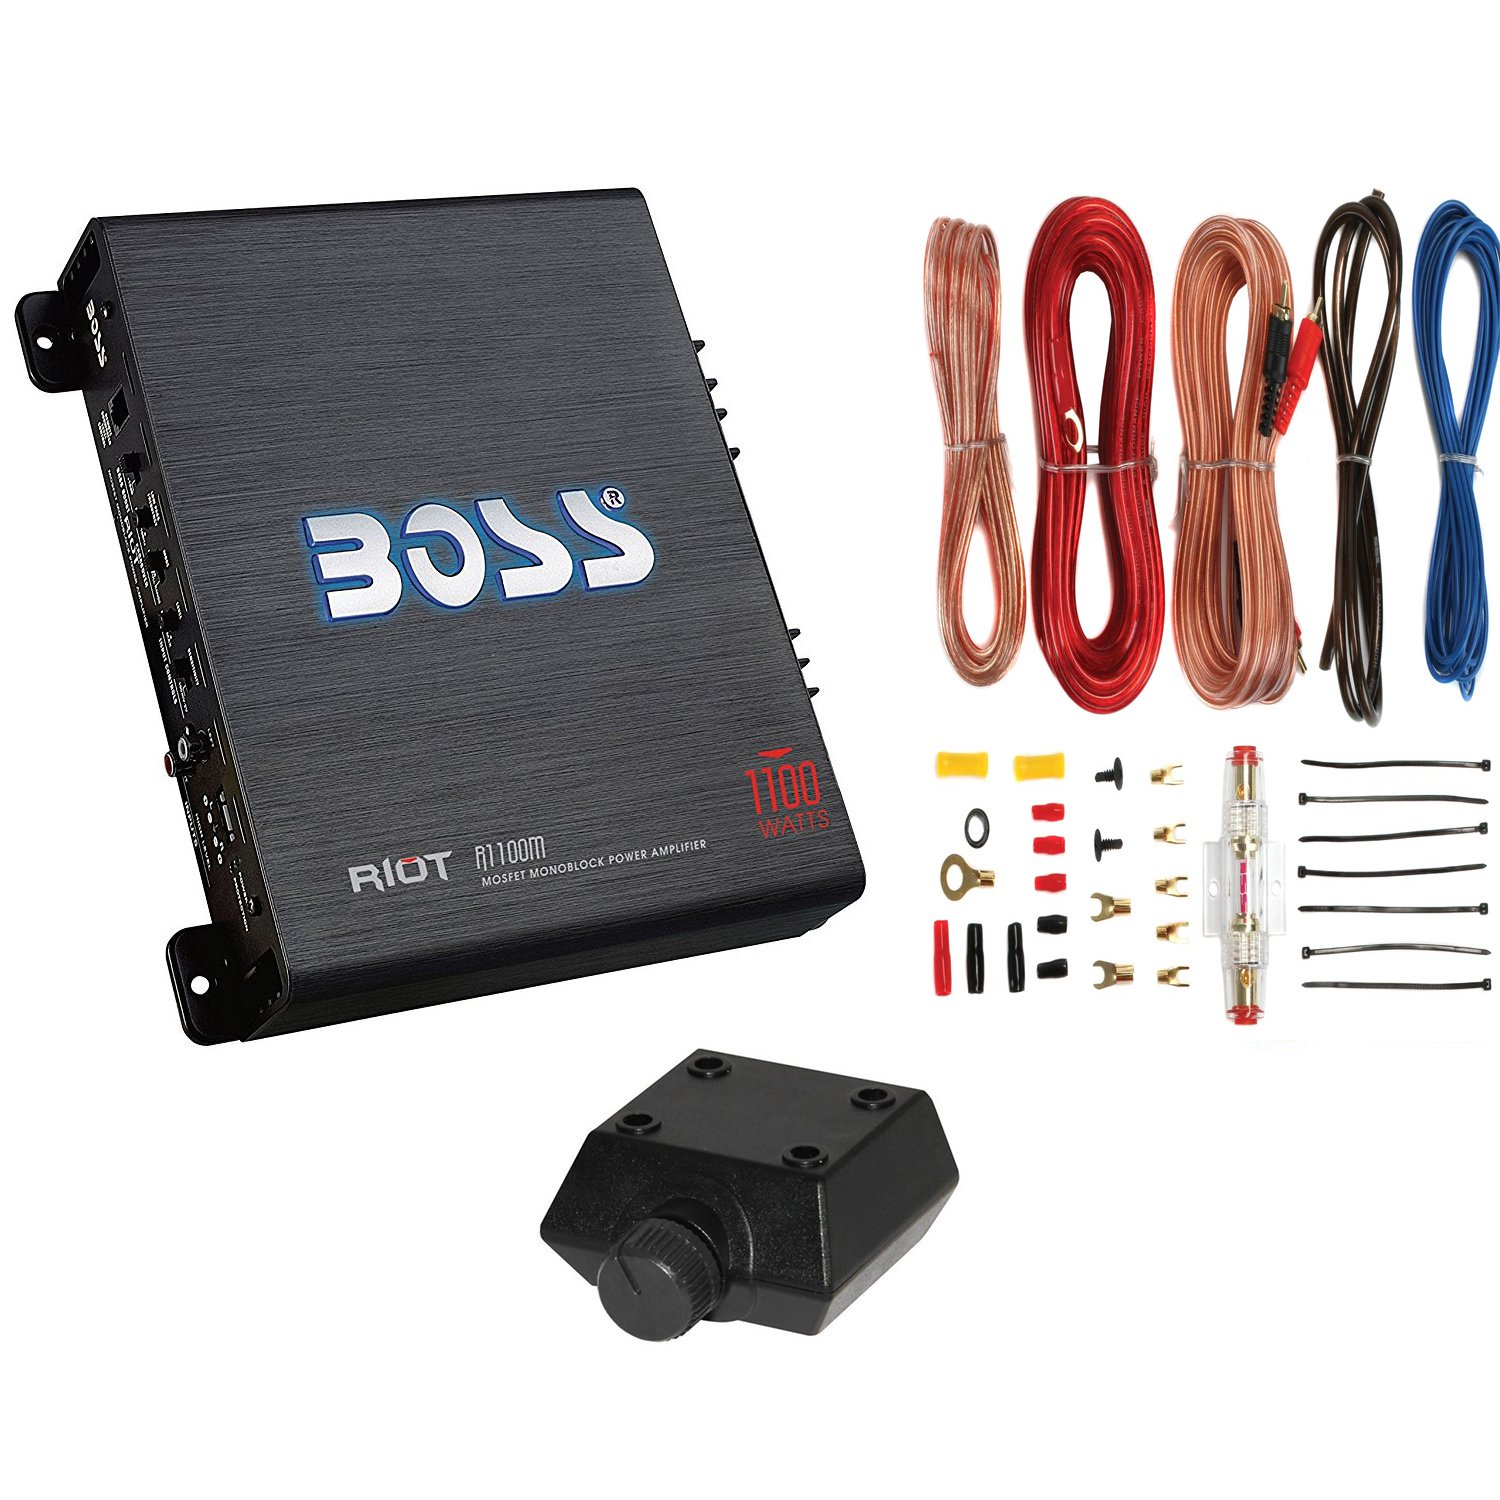 car amplifier wiring walmart comproduct image new boss r1100m 1100w mono car audio amplifier amp 8 gauge amp wiring kit